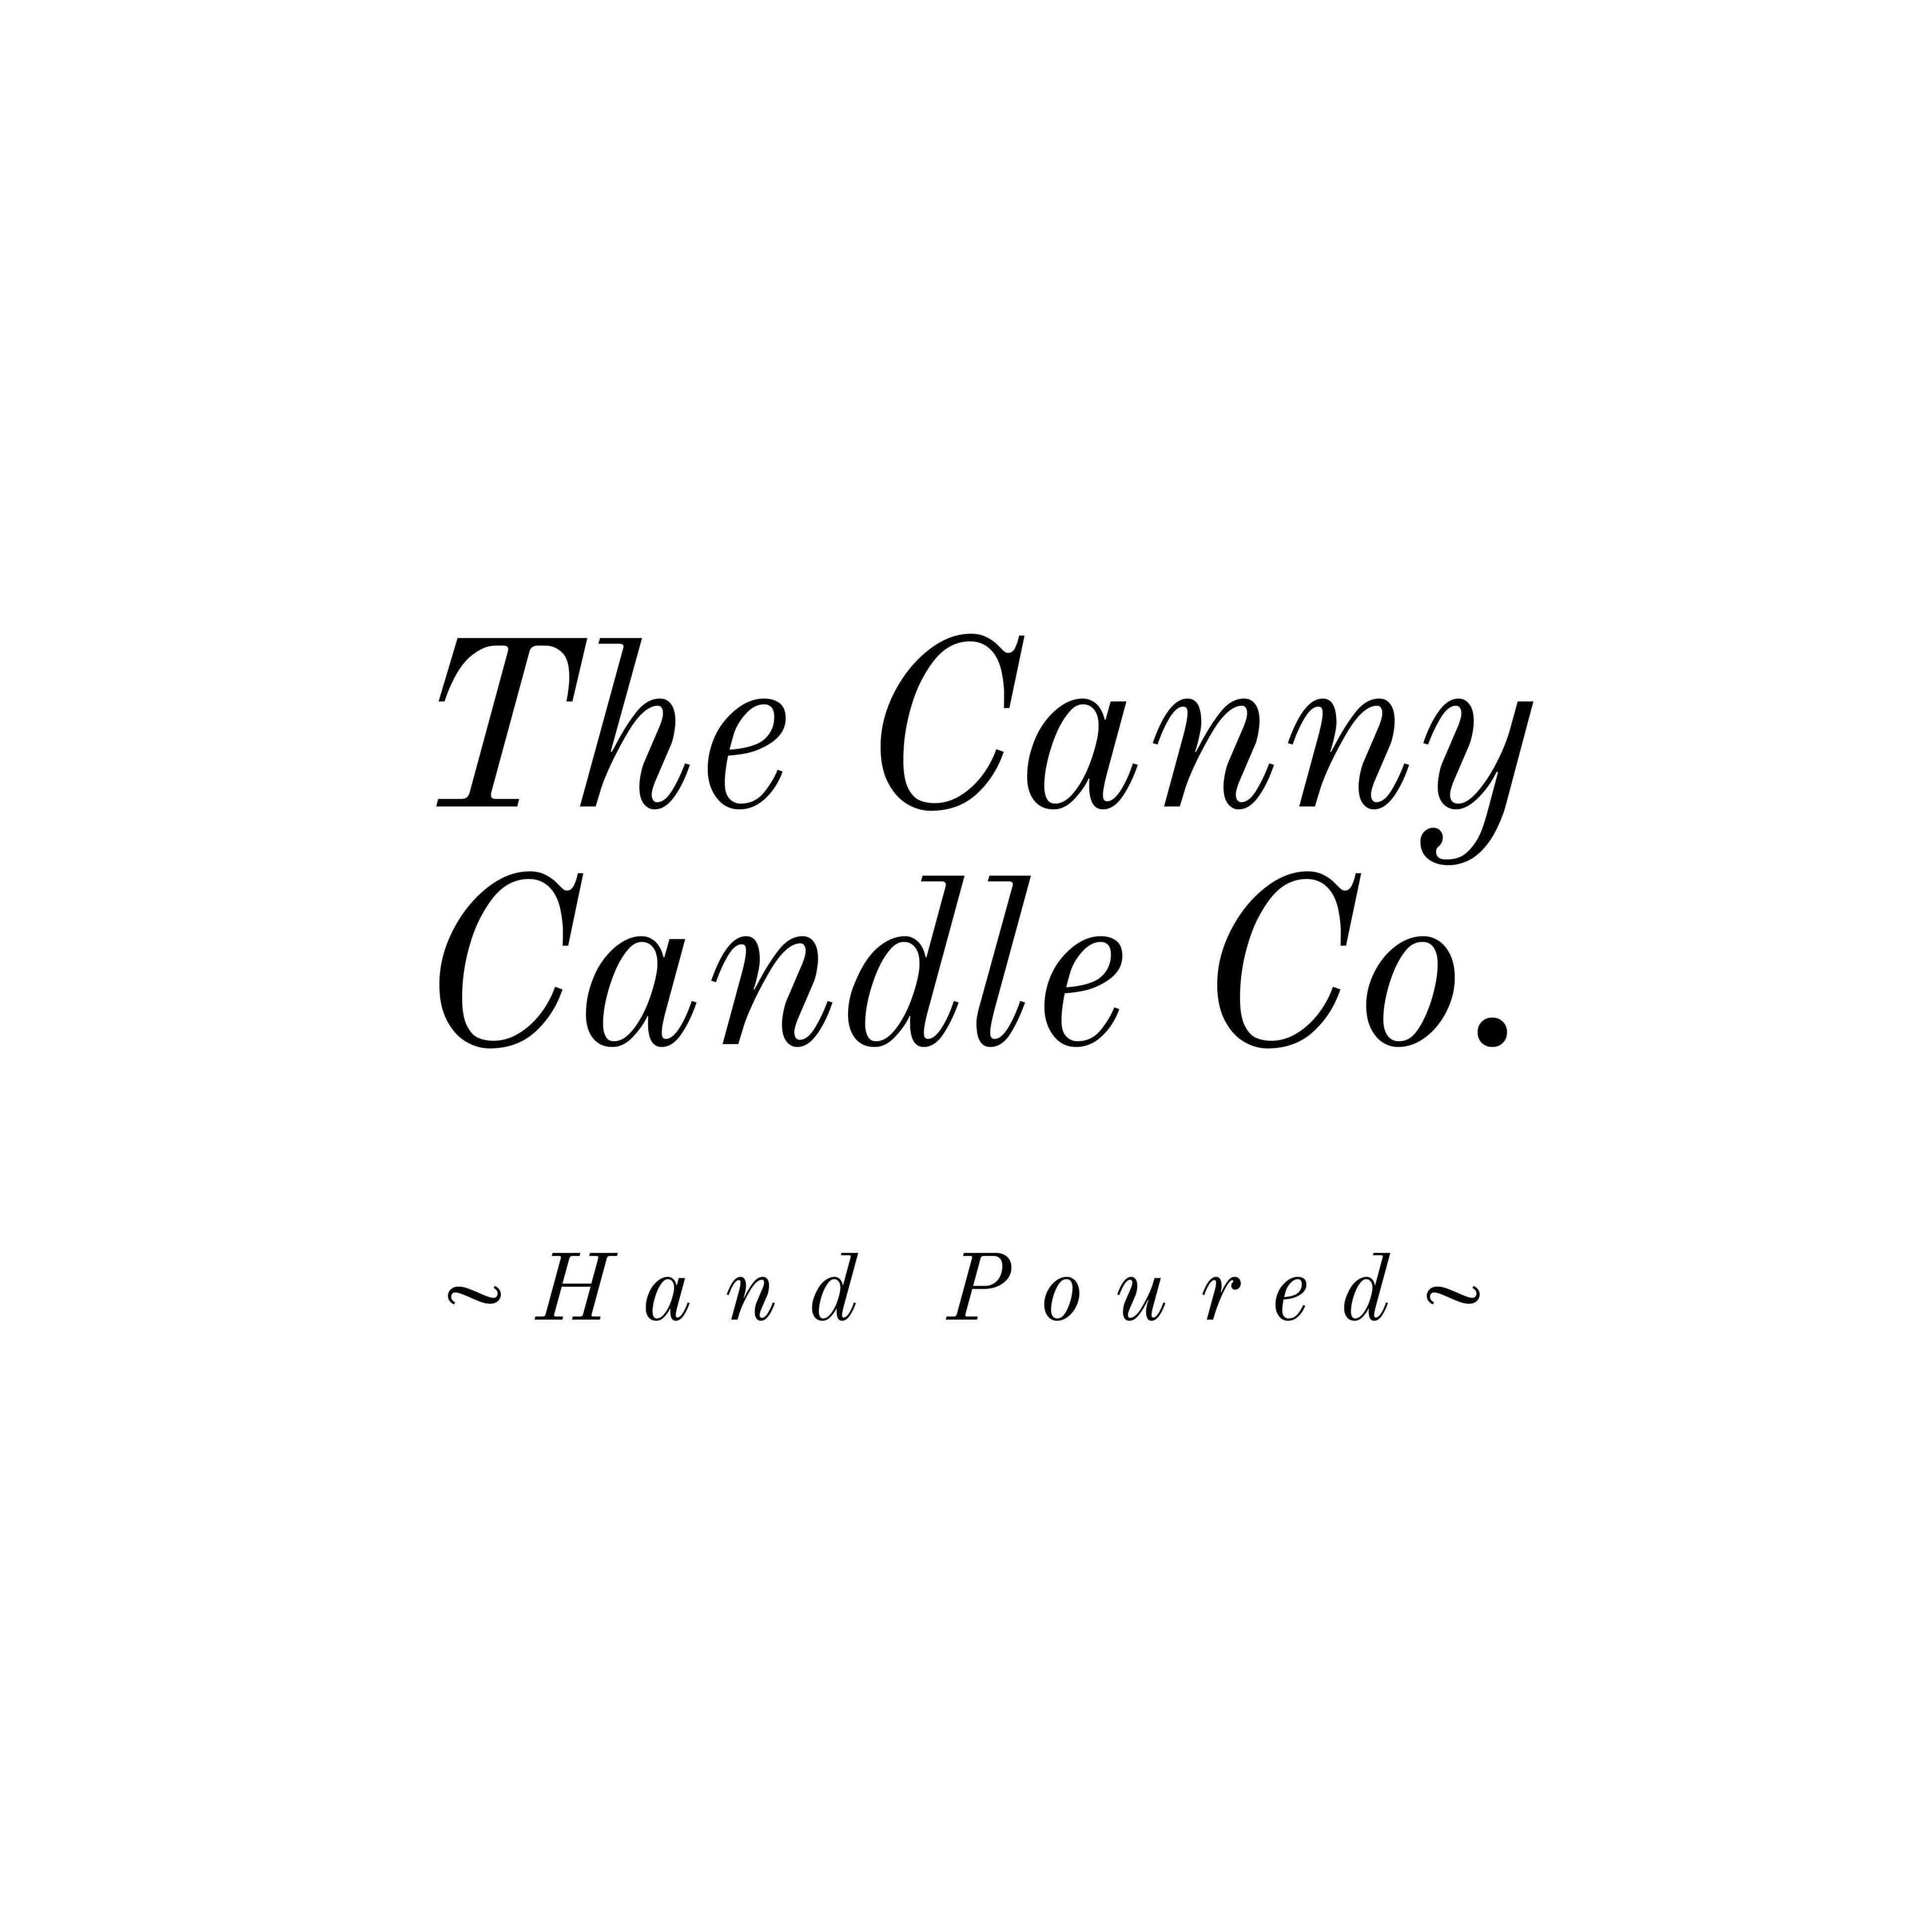 The Canny Candle Co.